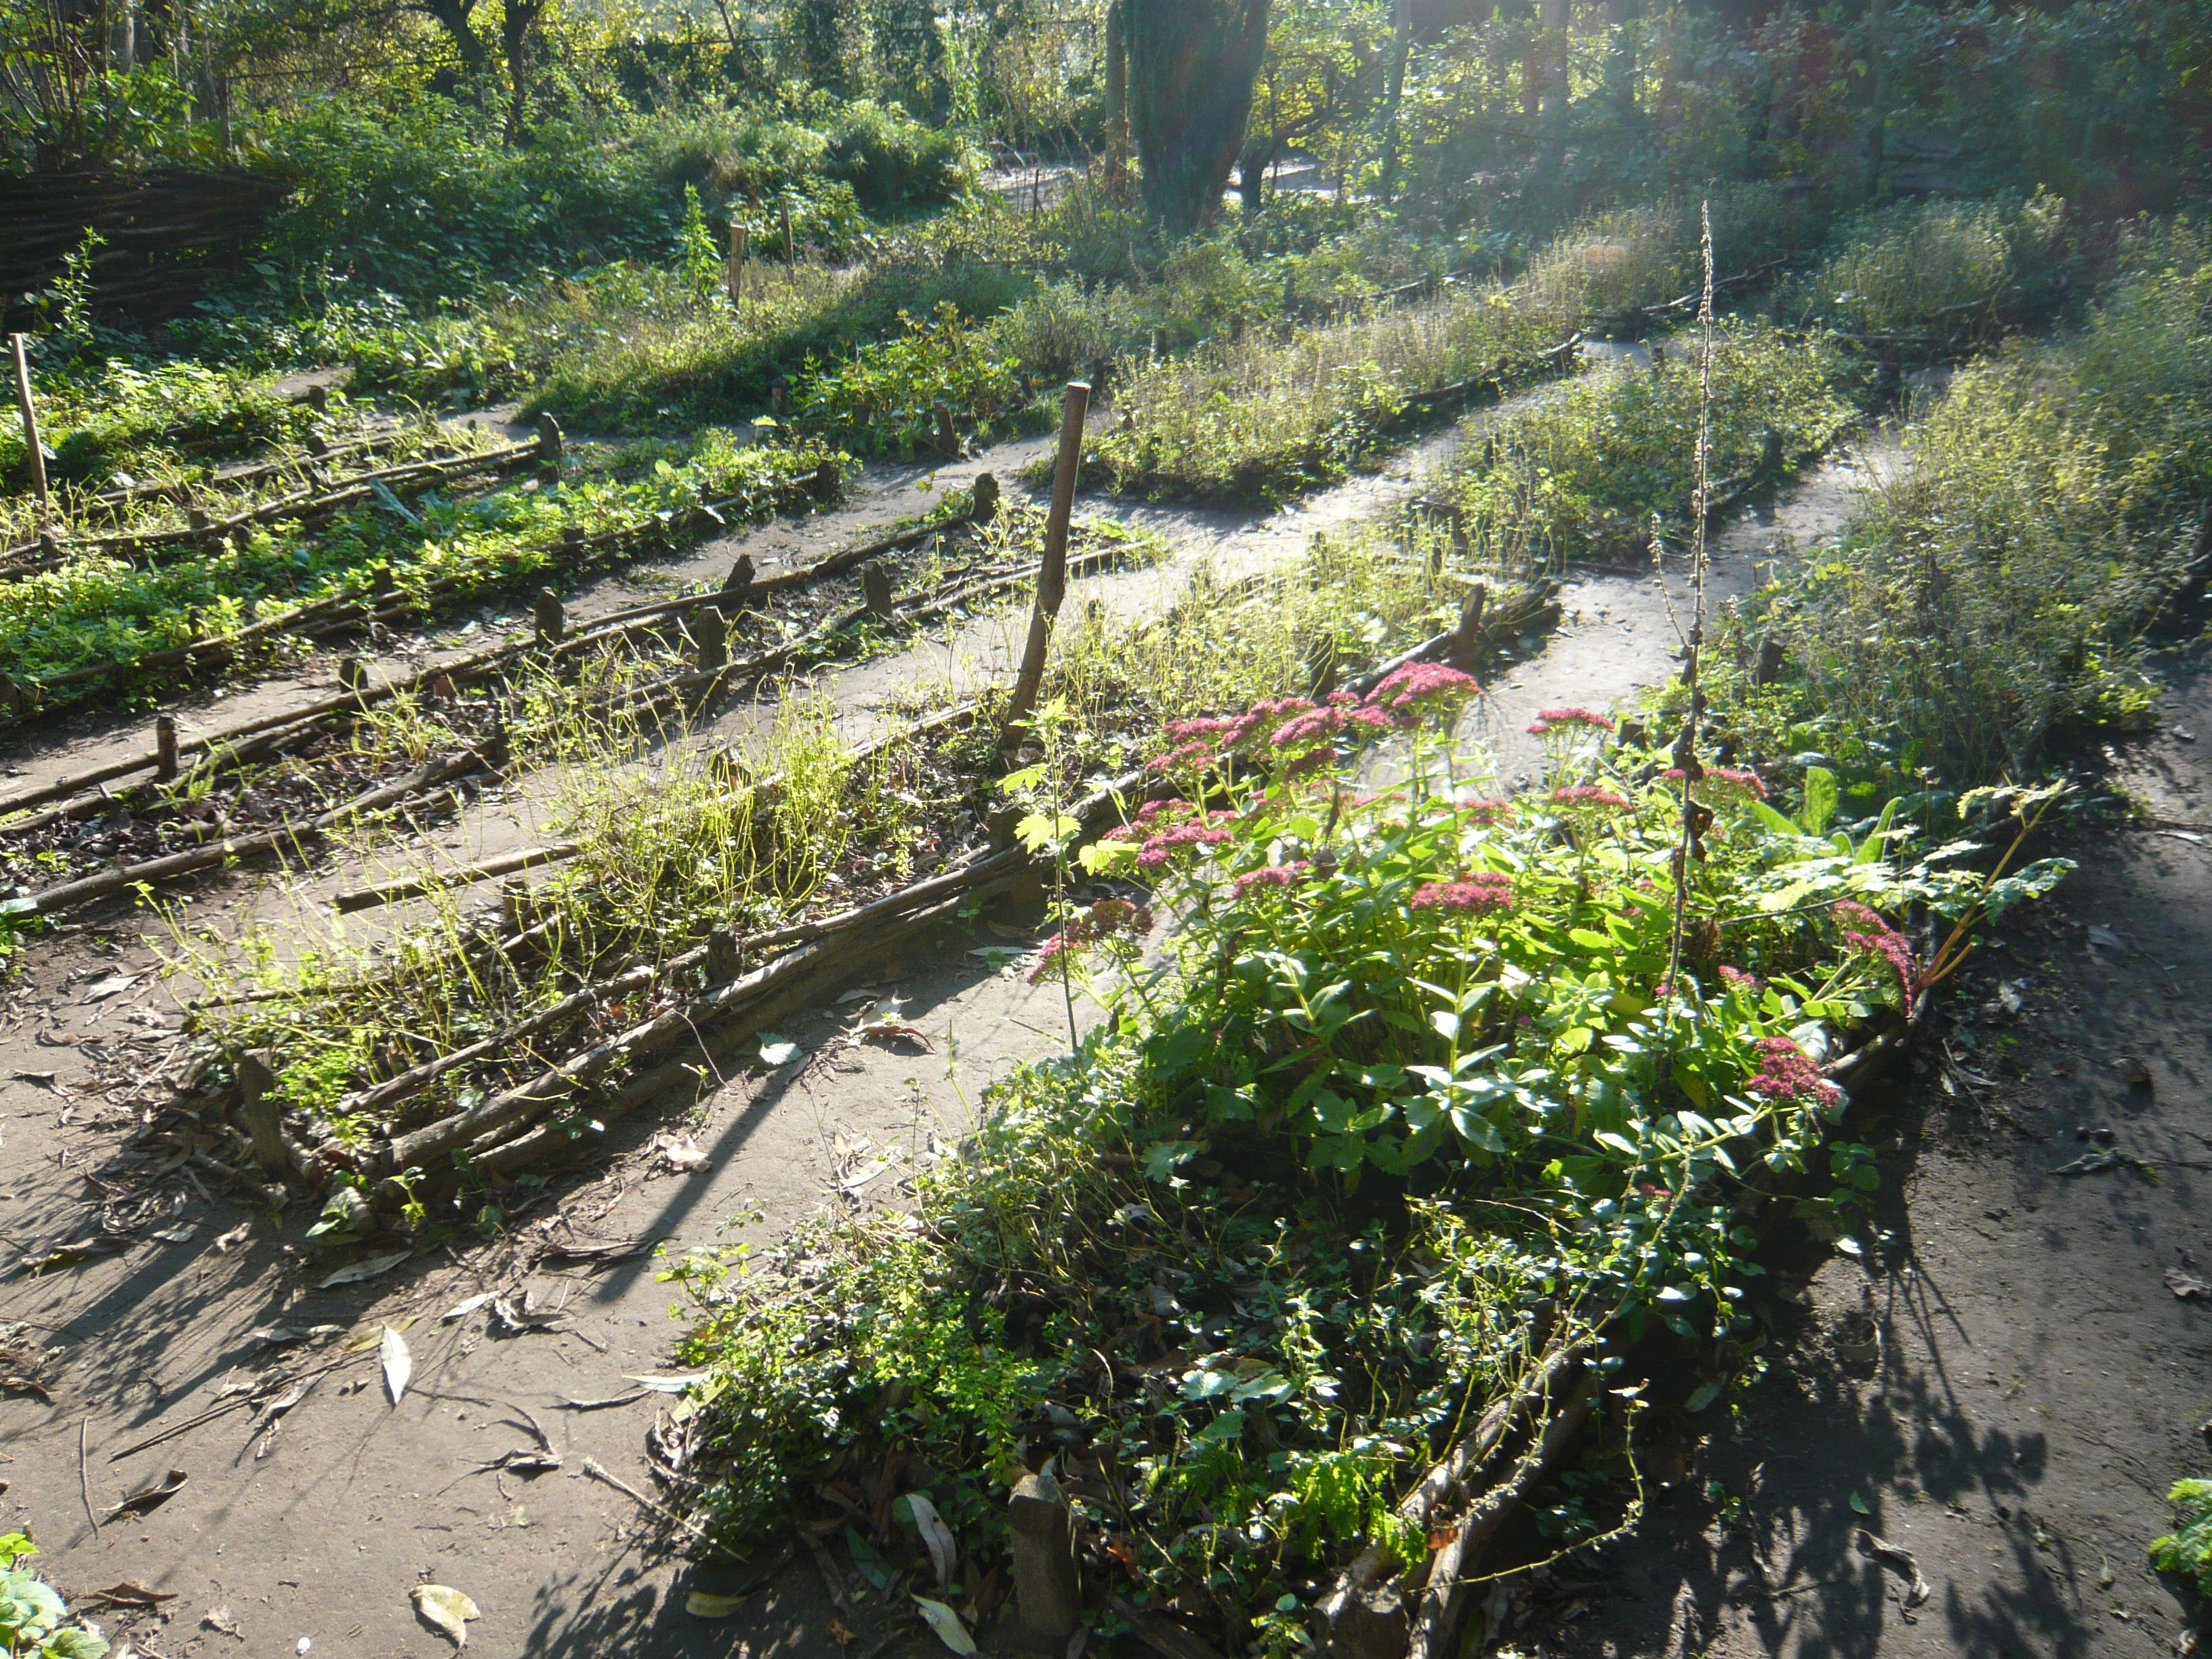 The medieval kitchen garden. Elditha had one of these at